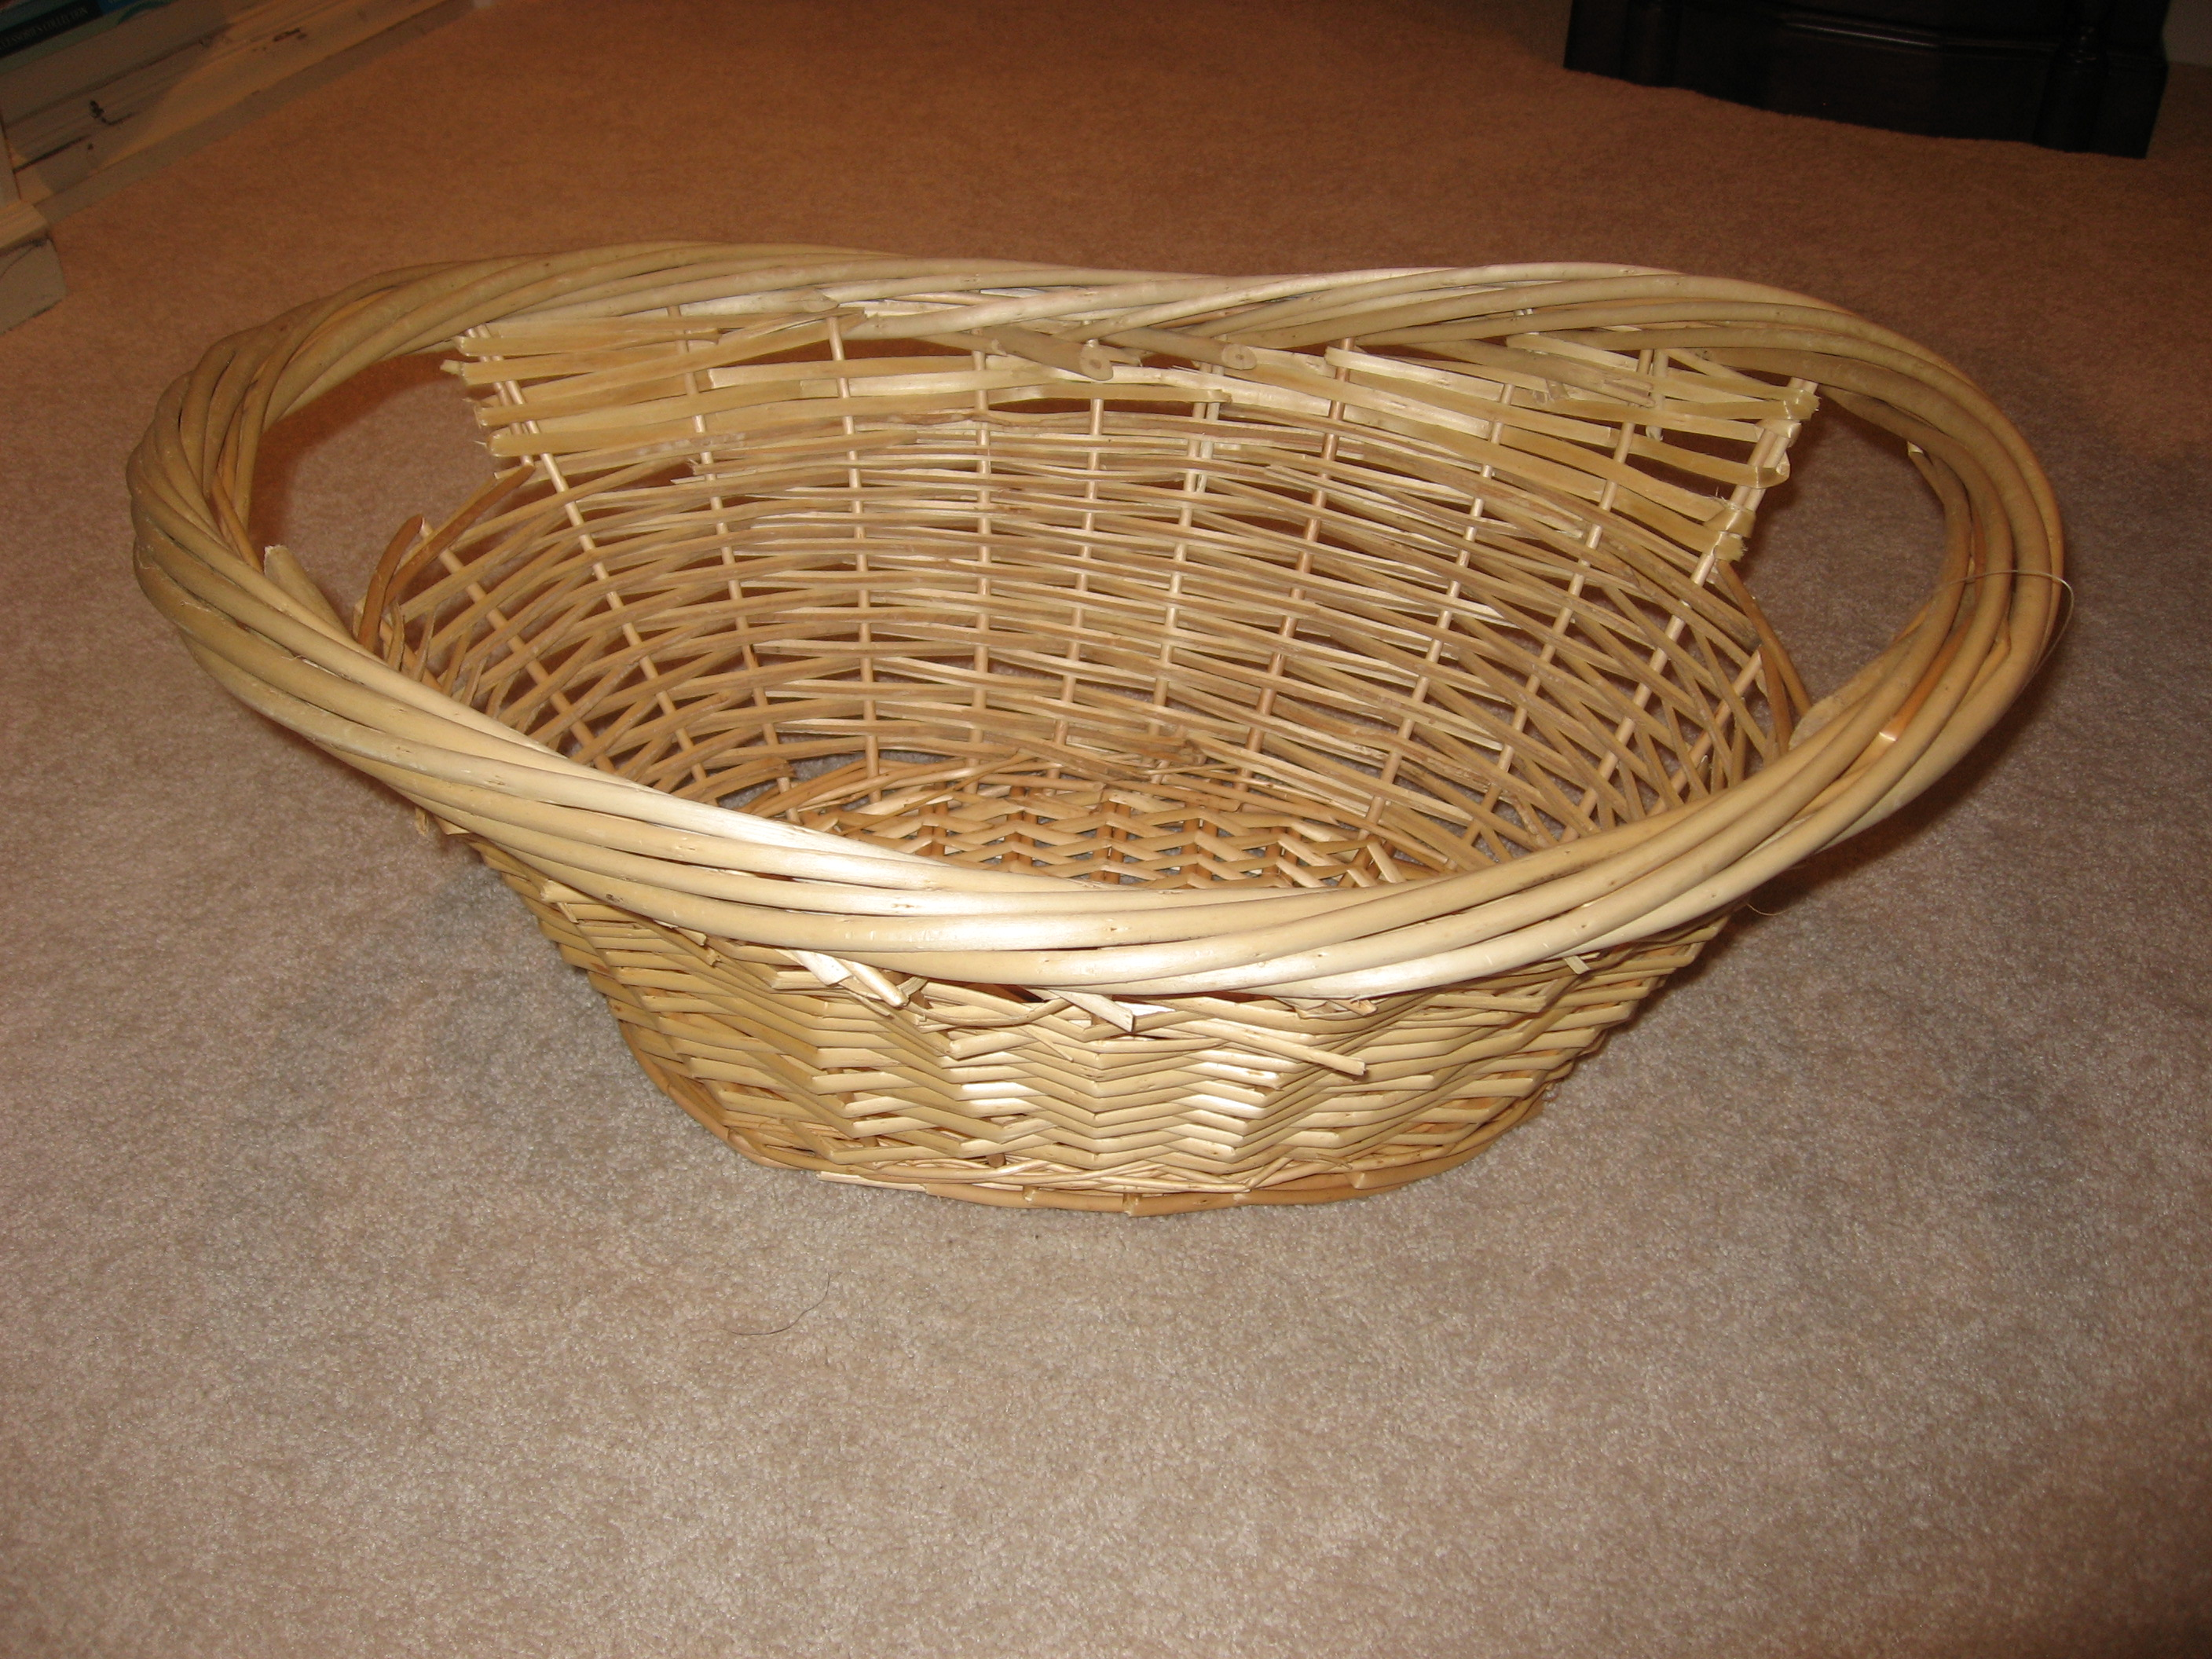 Decorate A Simple Basket For The Holidays In Touch